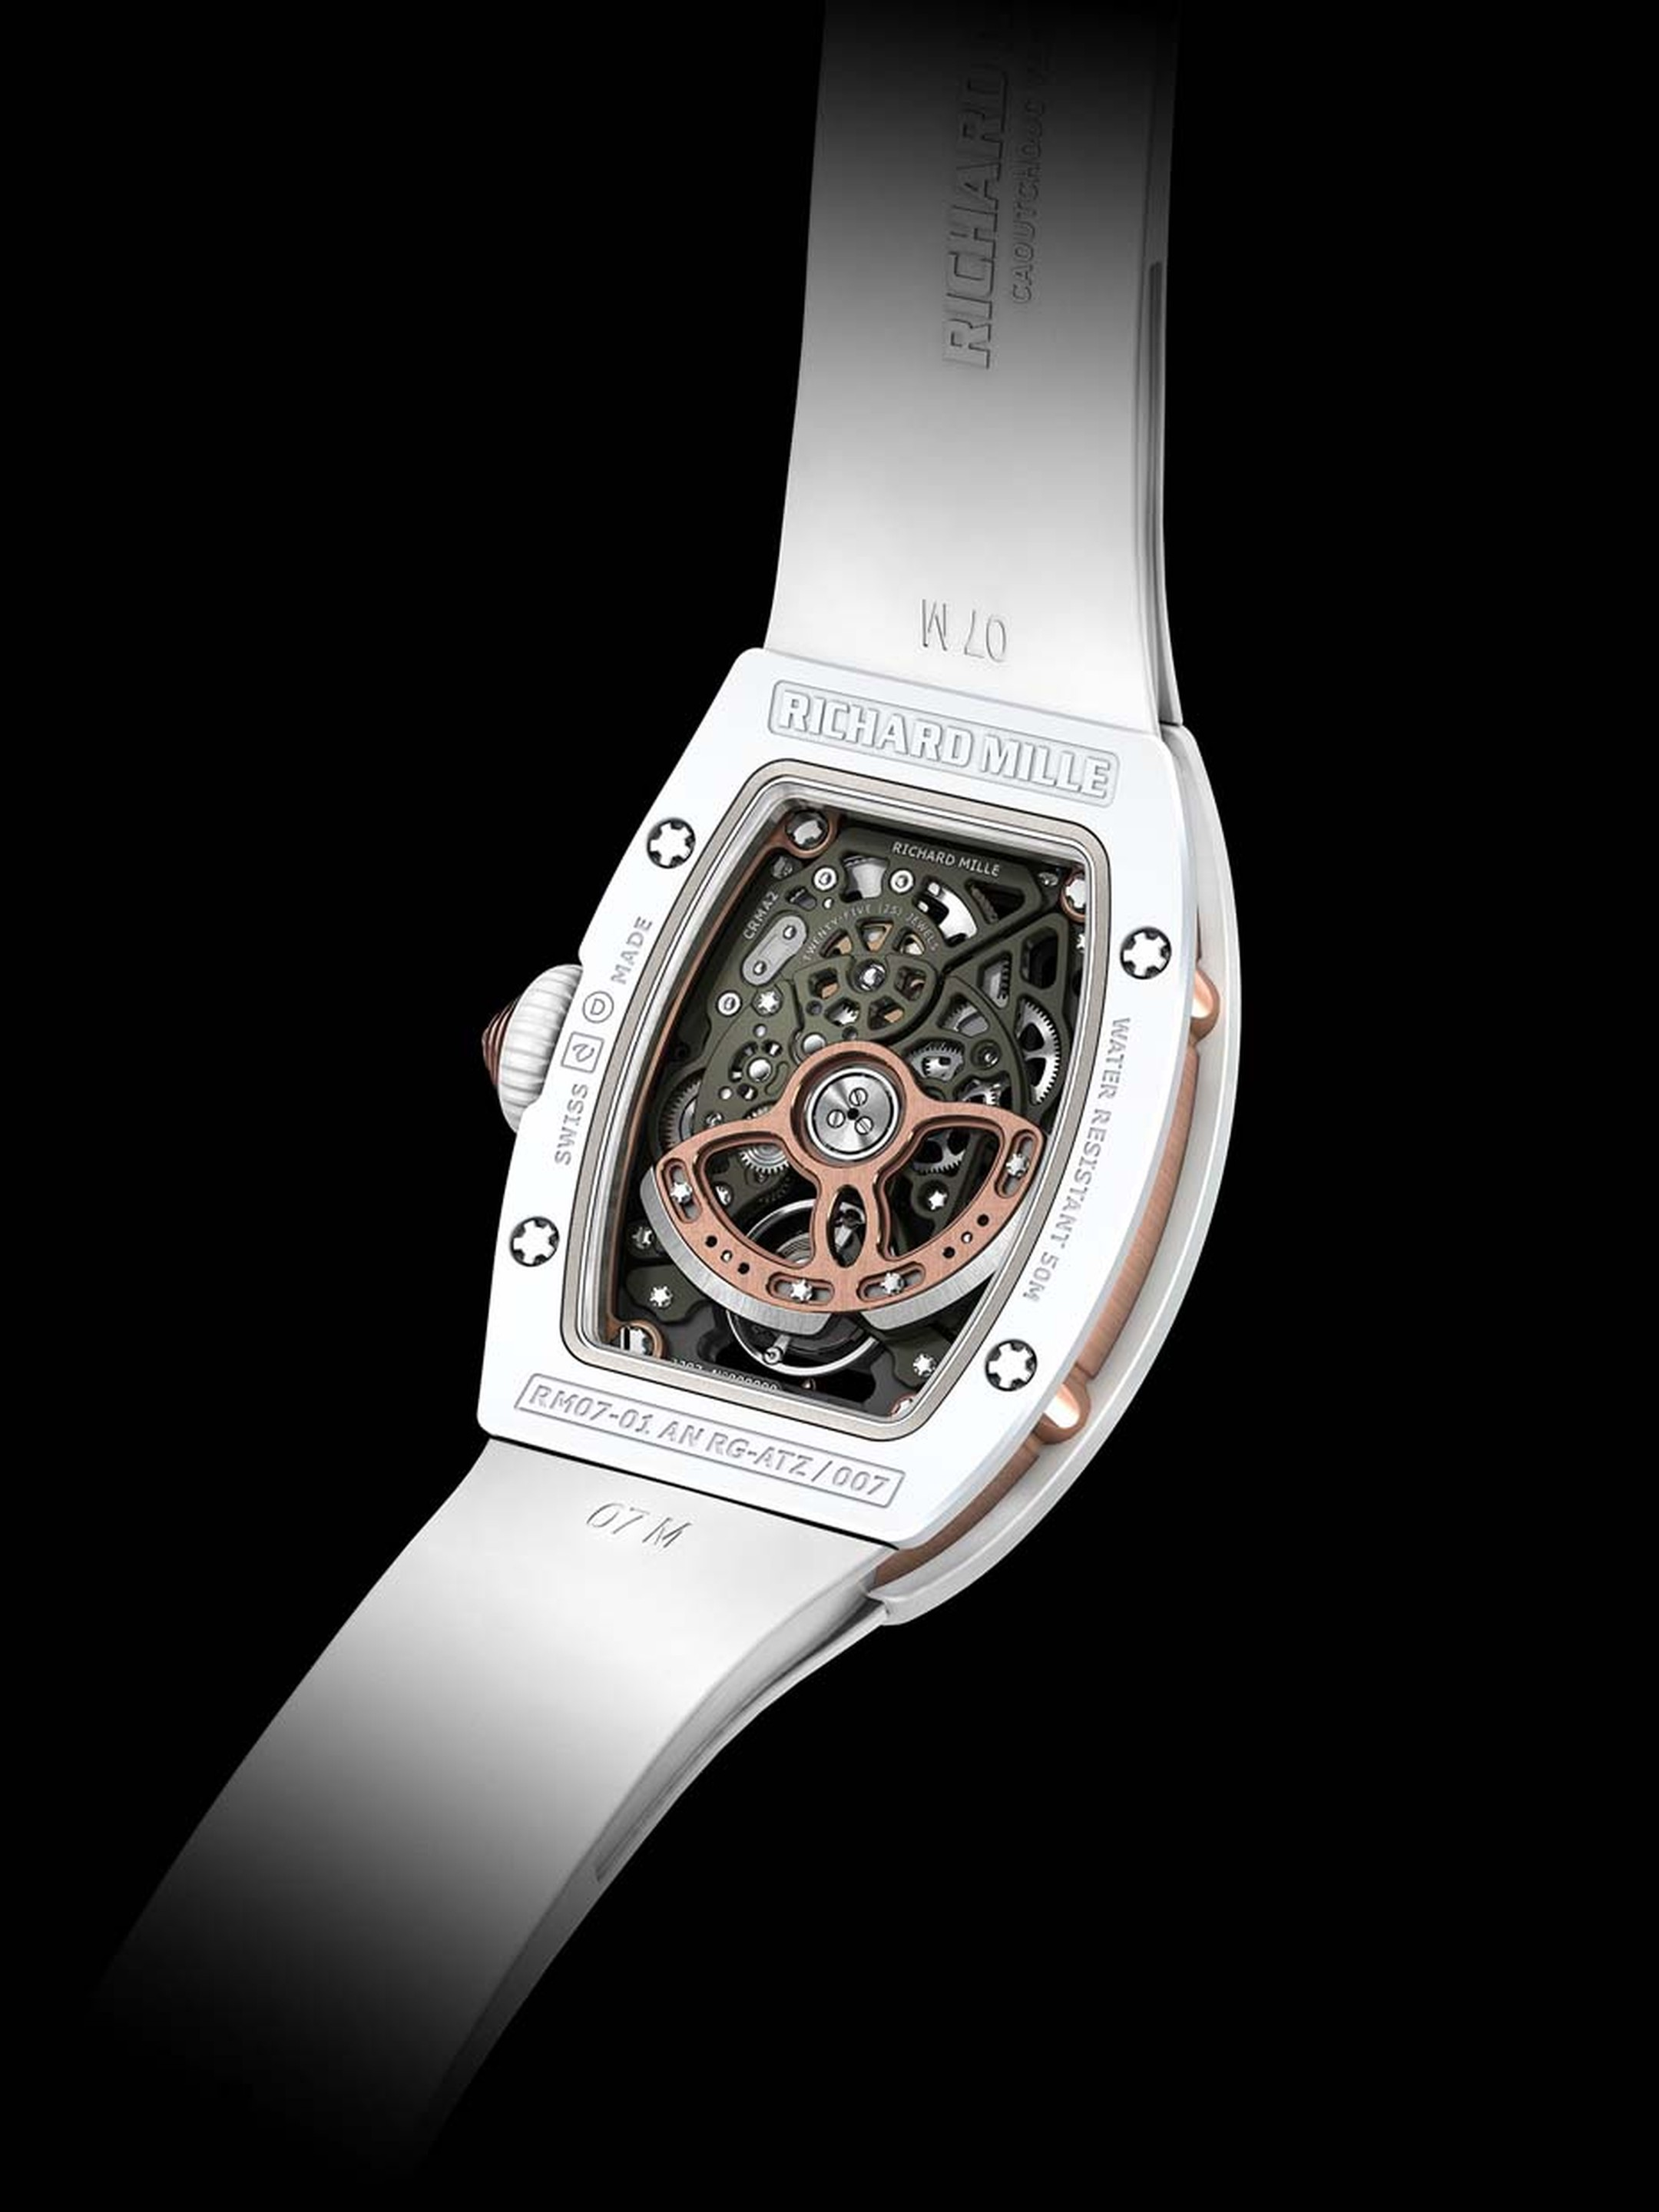 The reverse of the Richard Mille RM 07-01 watch in white ATZ ceramic